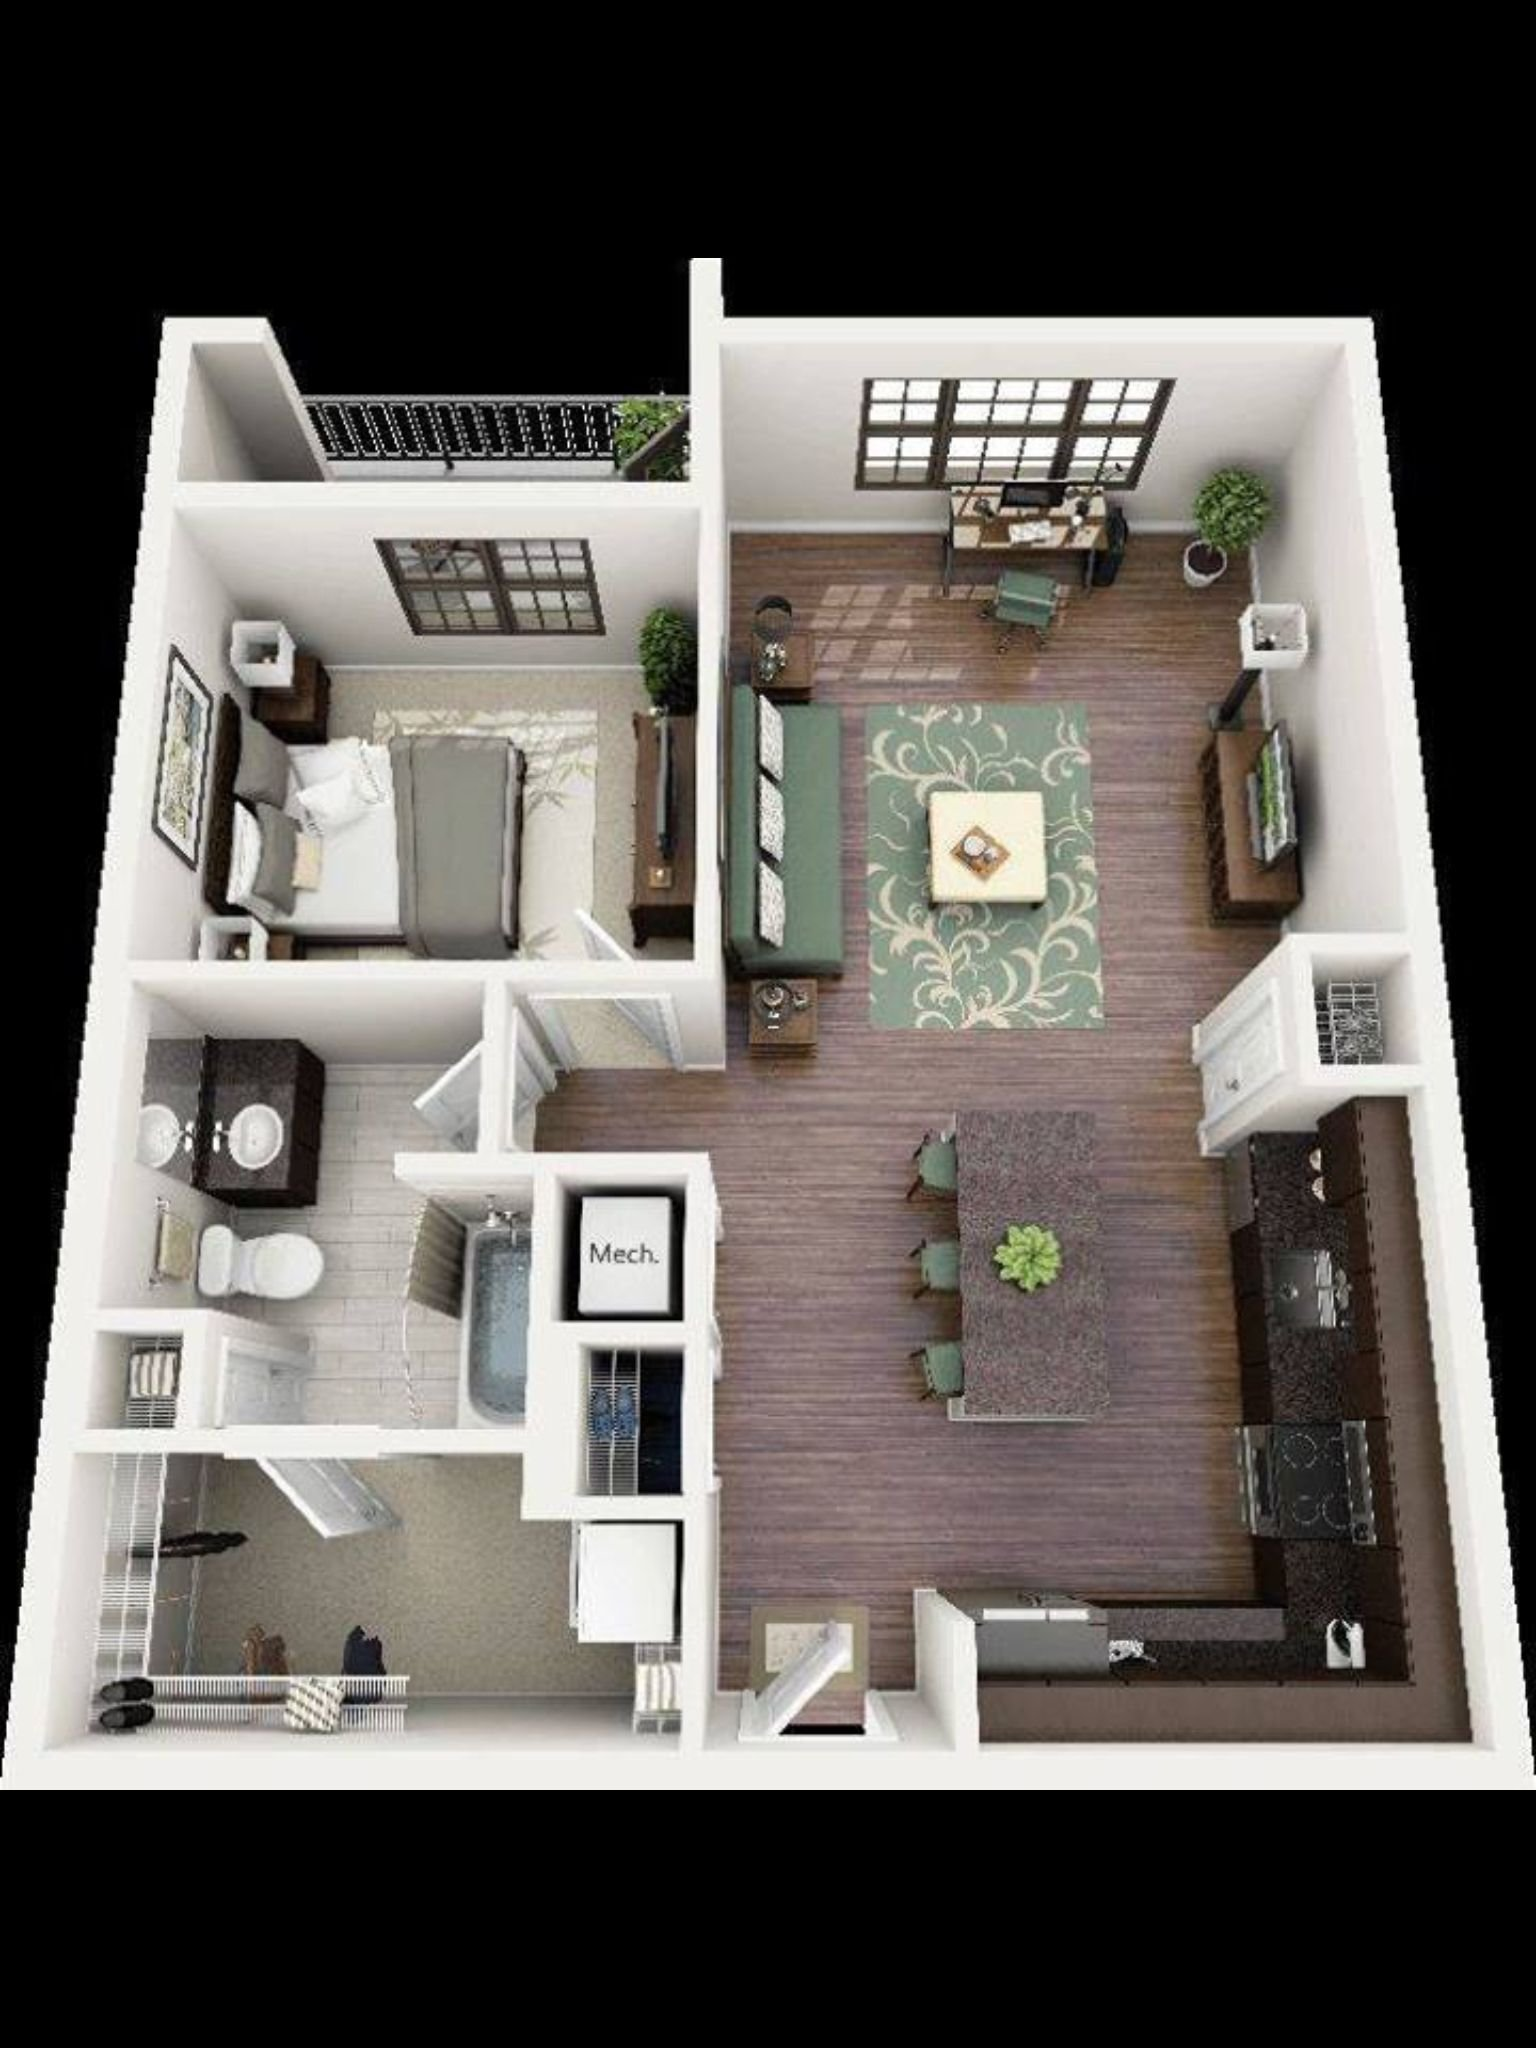 Best Very Nice And Comfortable Planning Of The Apartment With Pictures